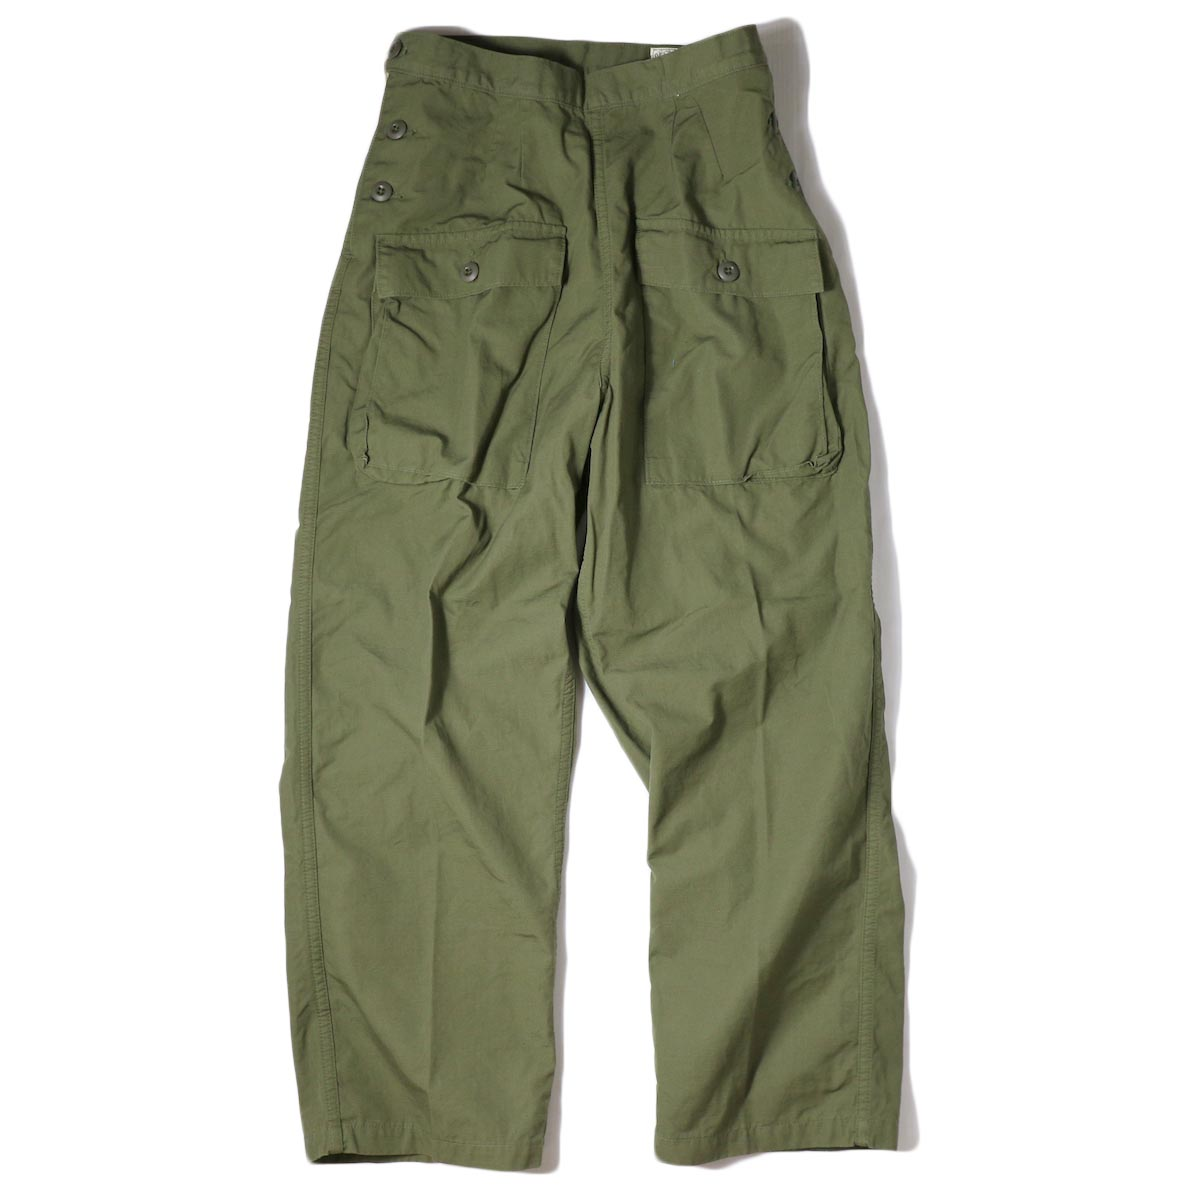 orSlow / US ARMY 2 POCKETS PANTS